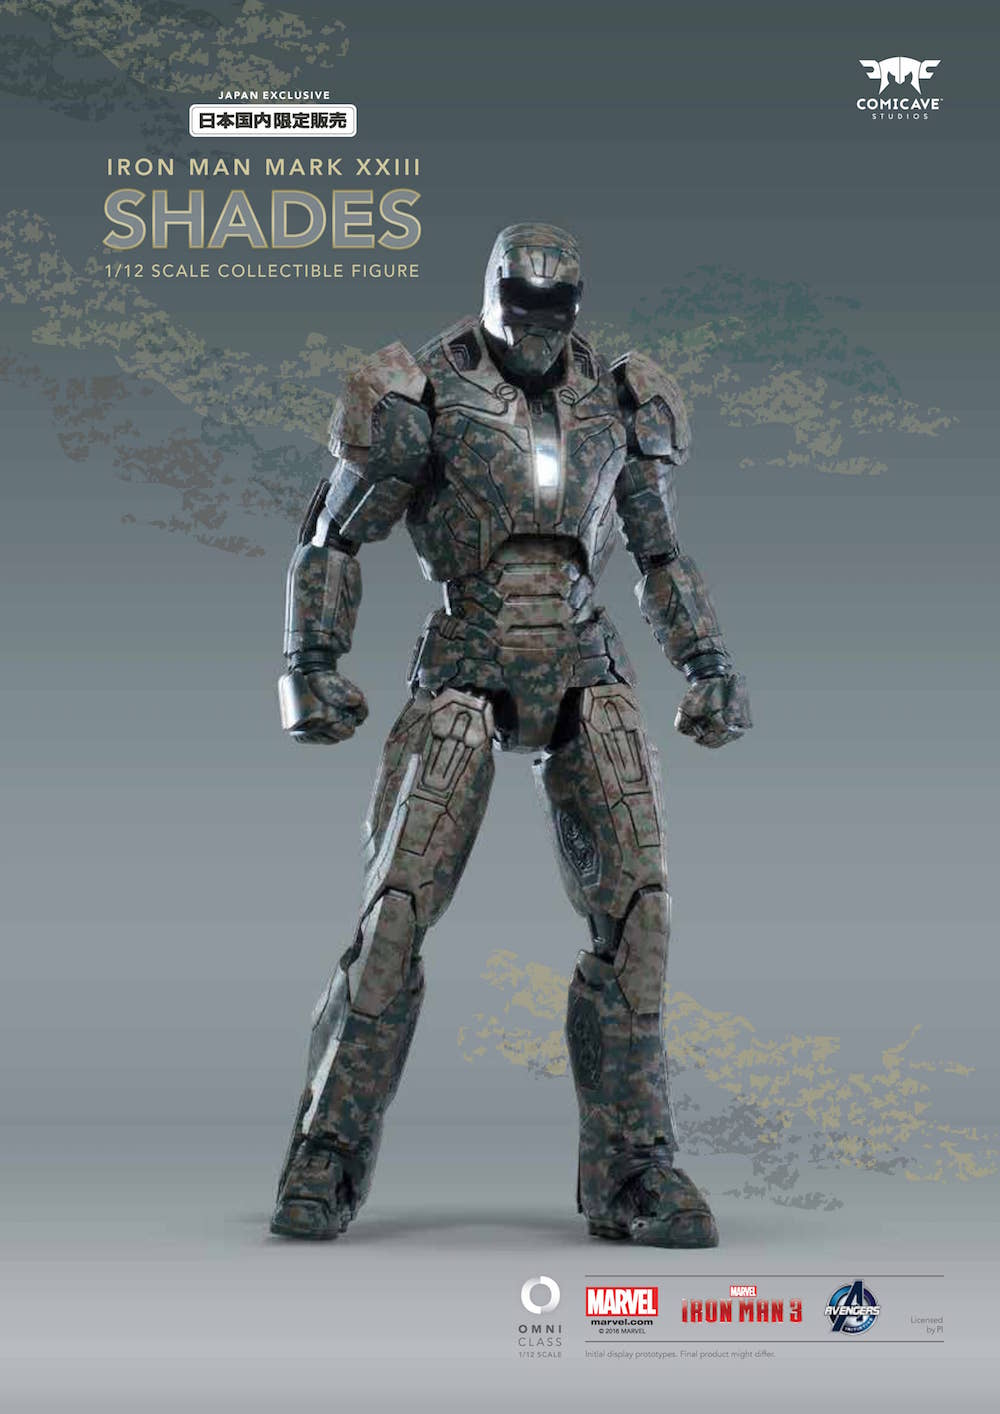 IRON MAN MK23 SHADES FIGURA METAL 15,3 CM MARVEL IRON MAN 1/12 SCALE COLLECTIBLE FIGURE